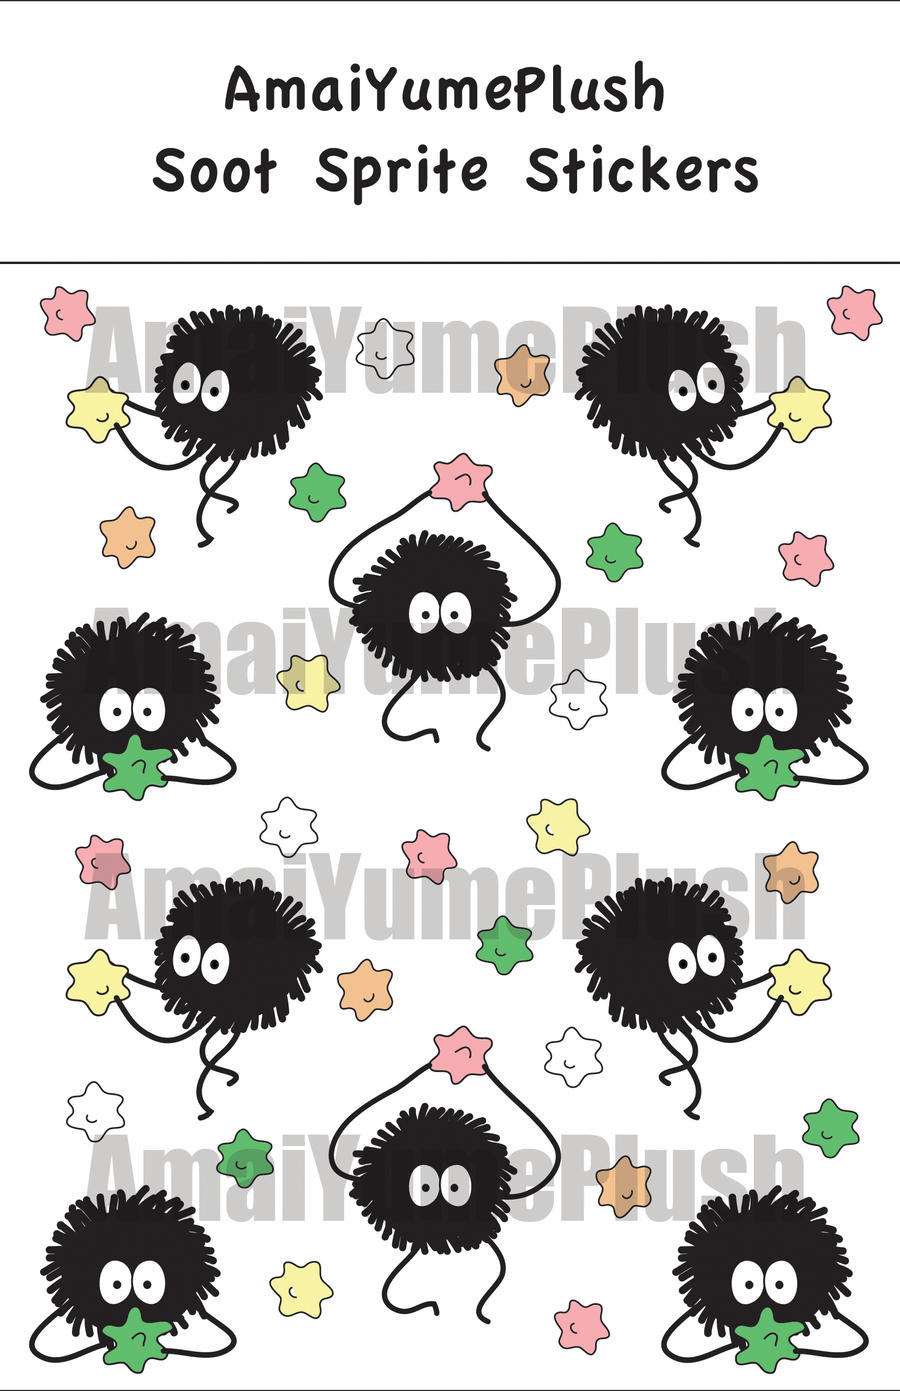 Spirited Away Soot Sprite Stickers Set Of 10 By Hazuhazuheavn On Deviantart